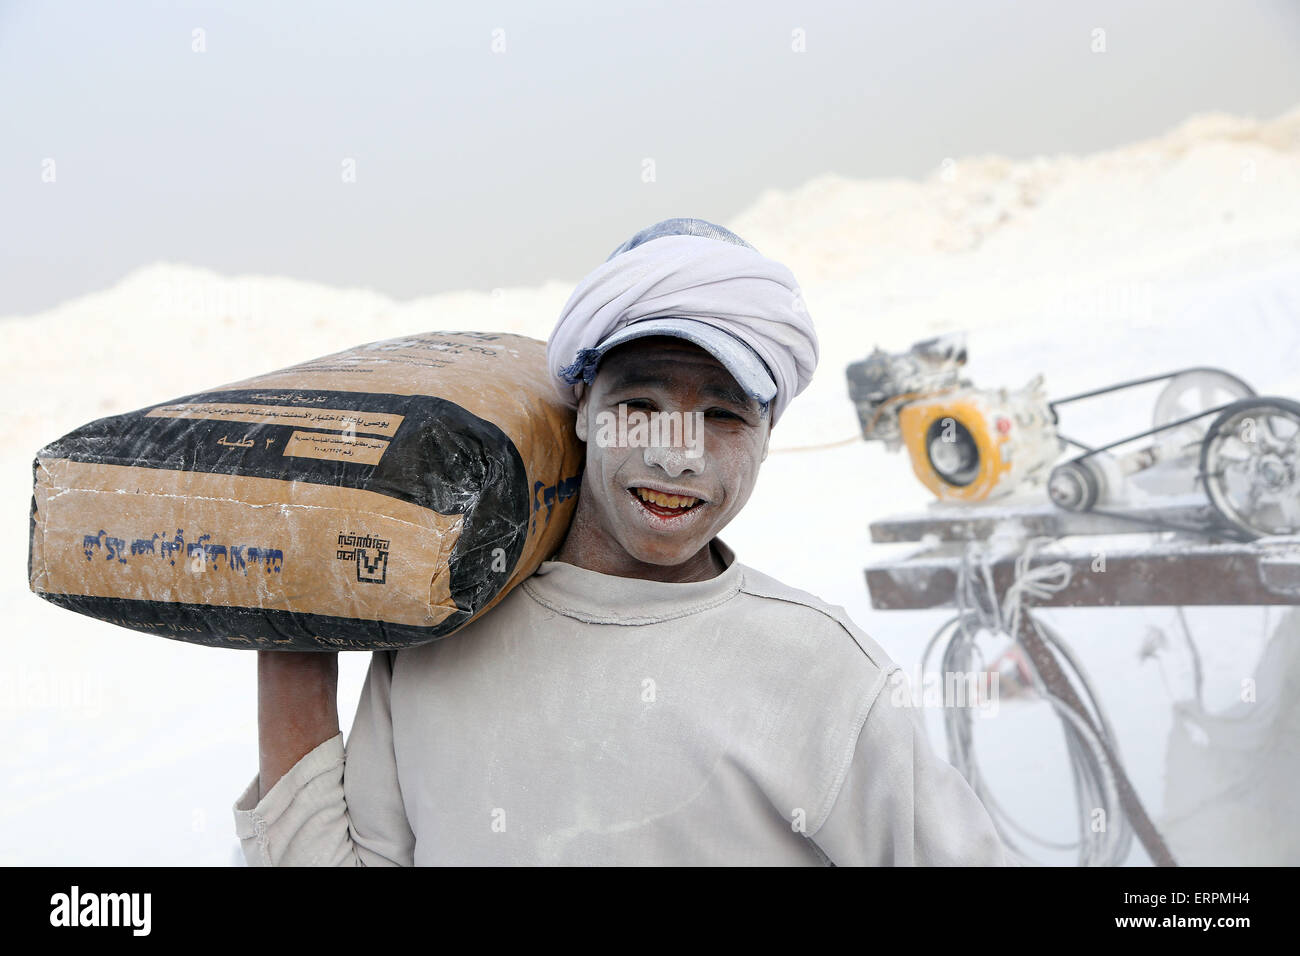 Beijing, Egypt. 28th May, 2015. A worker carries a bag of cement at a limestone quarry in Al Minya Province, Egypt, Stock Photo